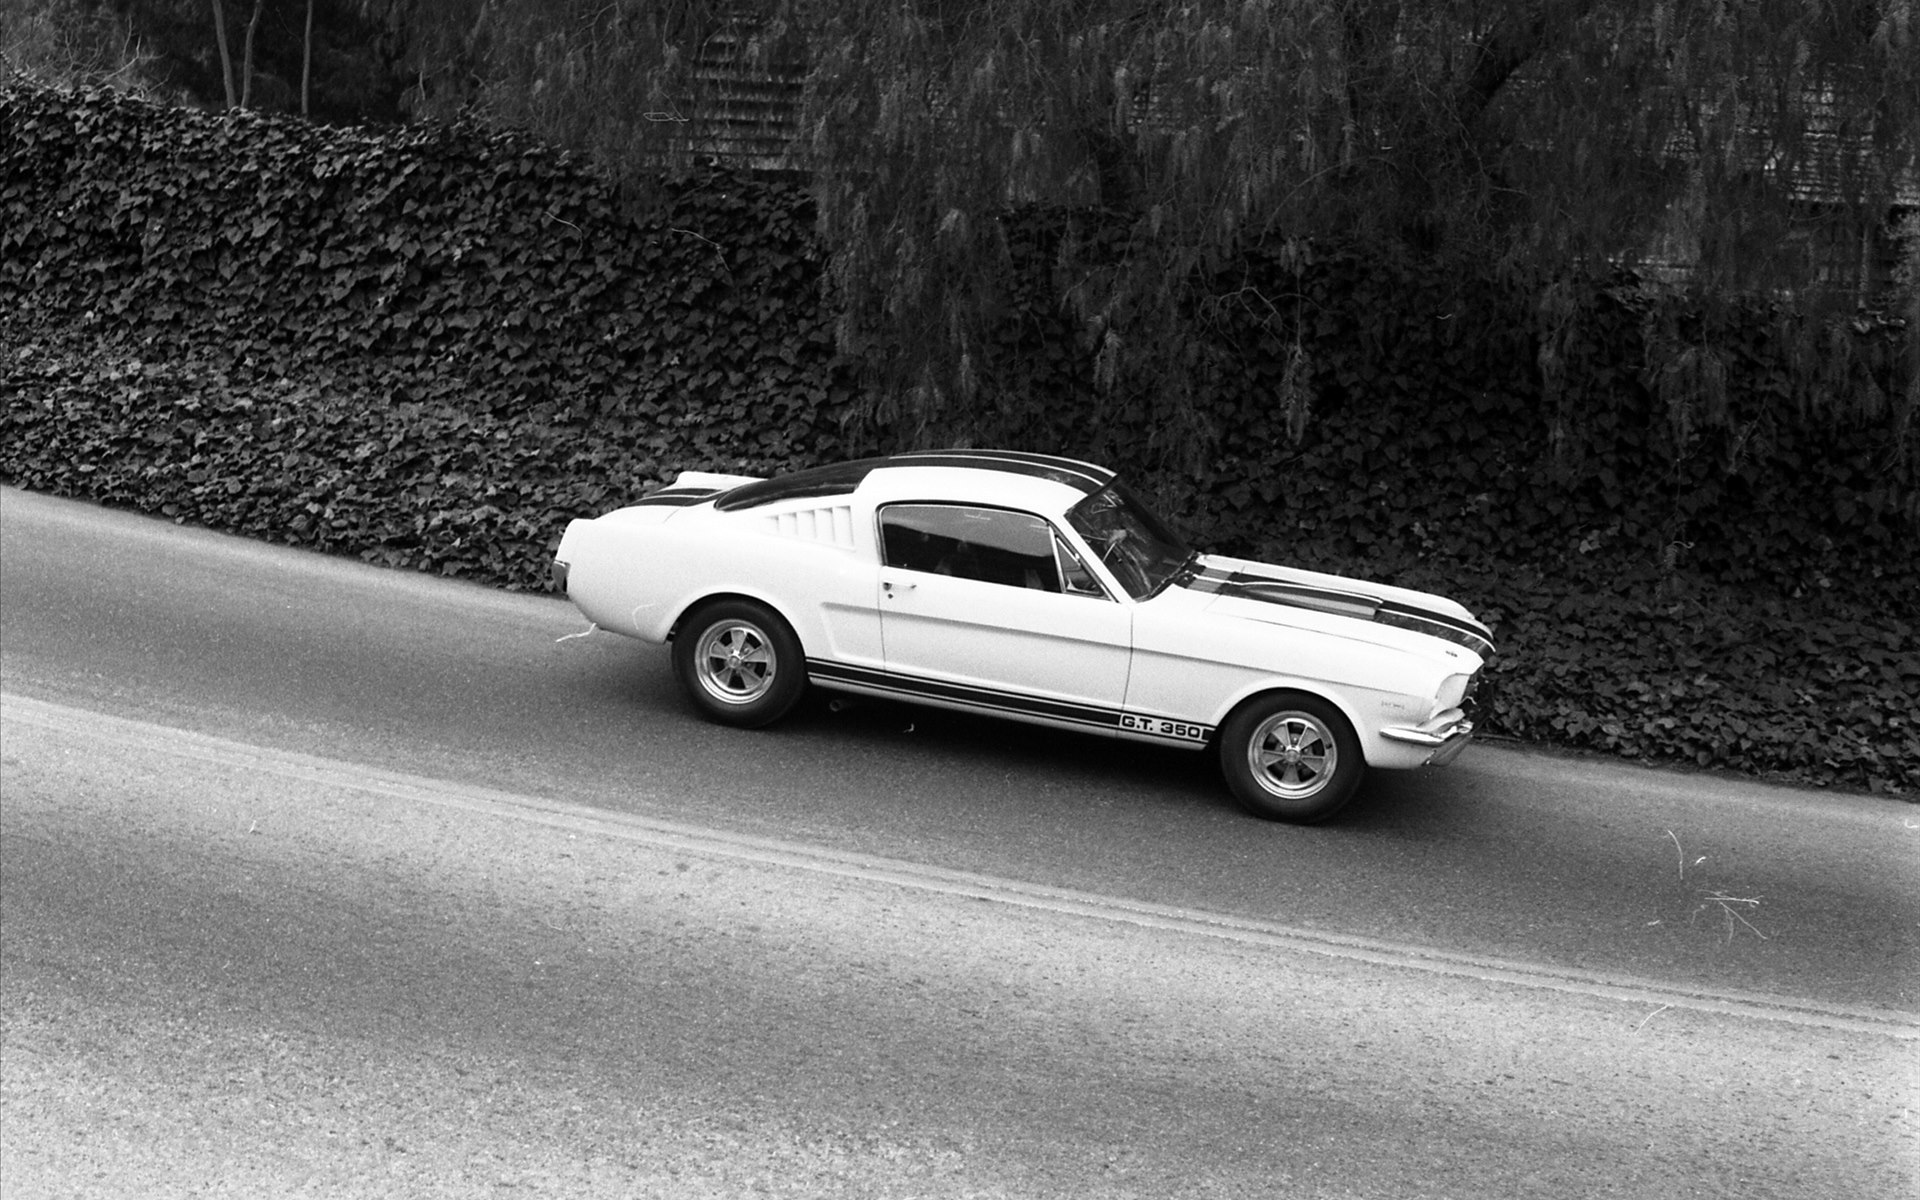 Ford Shelby Gt350 Mustang First Generation Ford Mustang